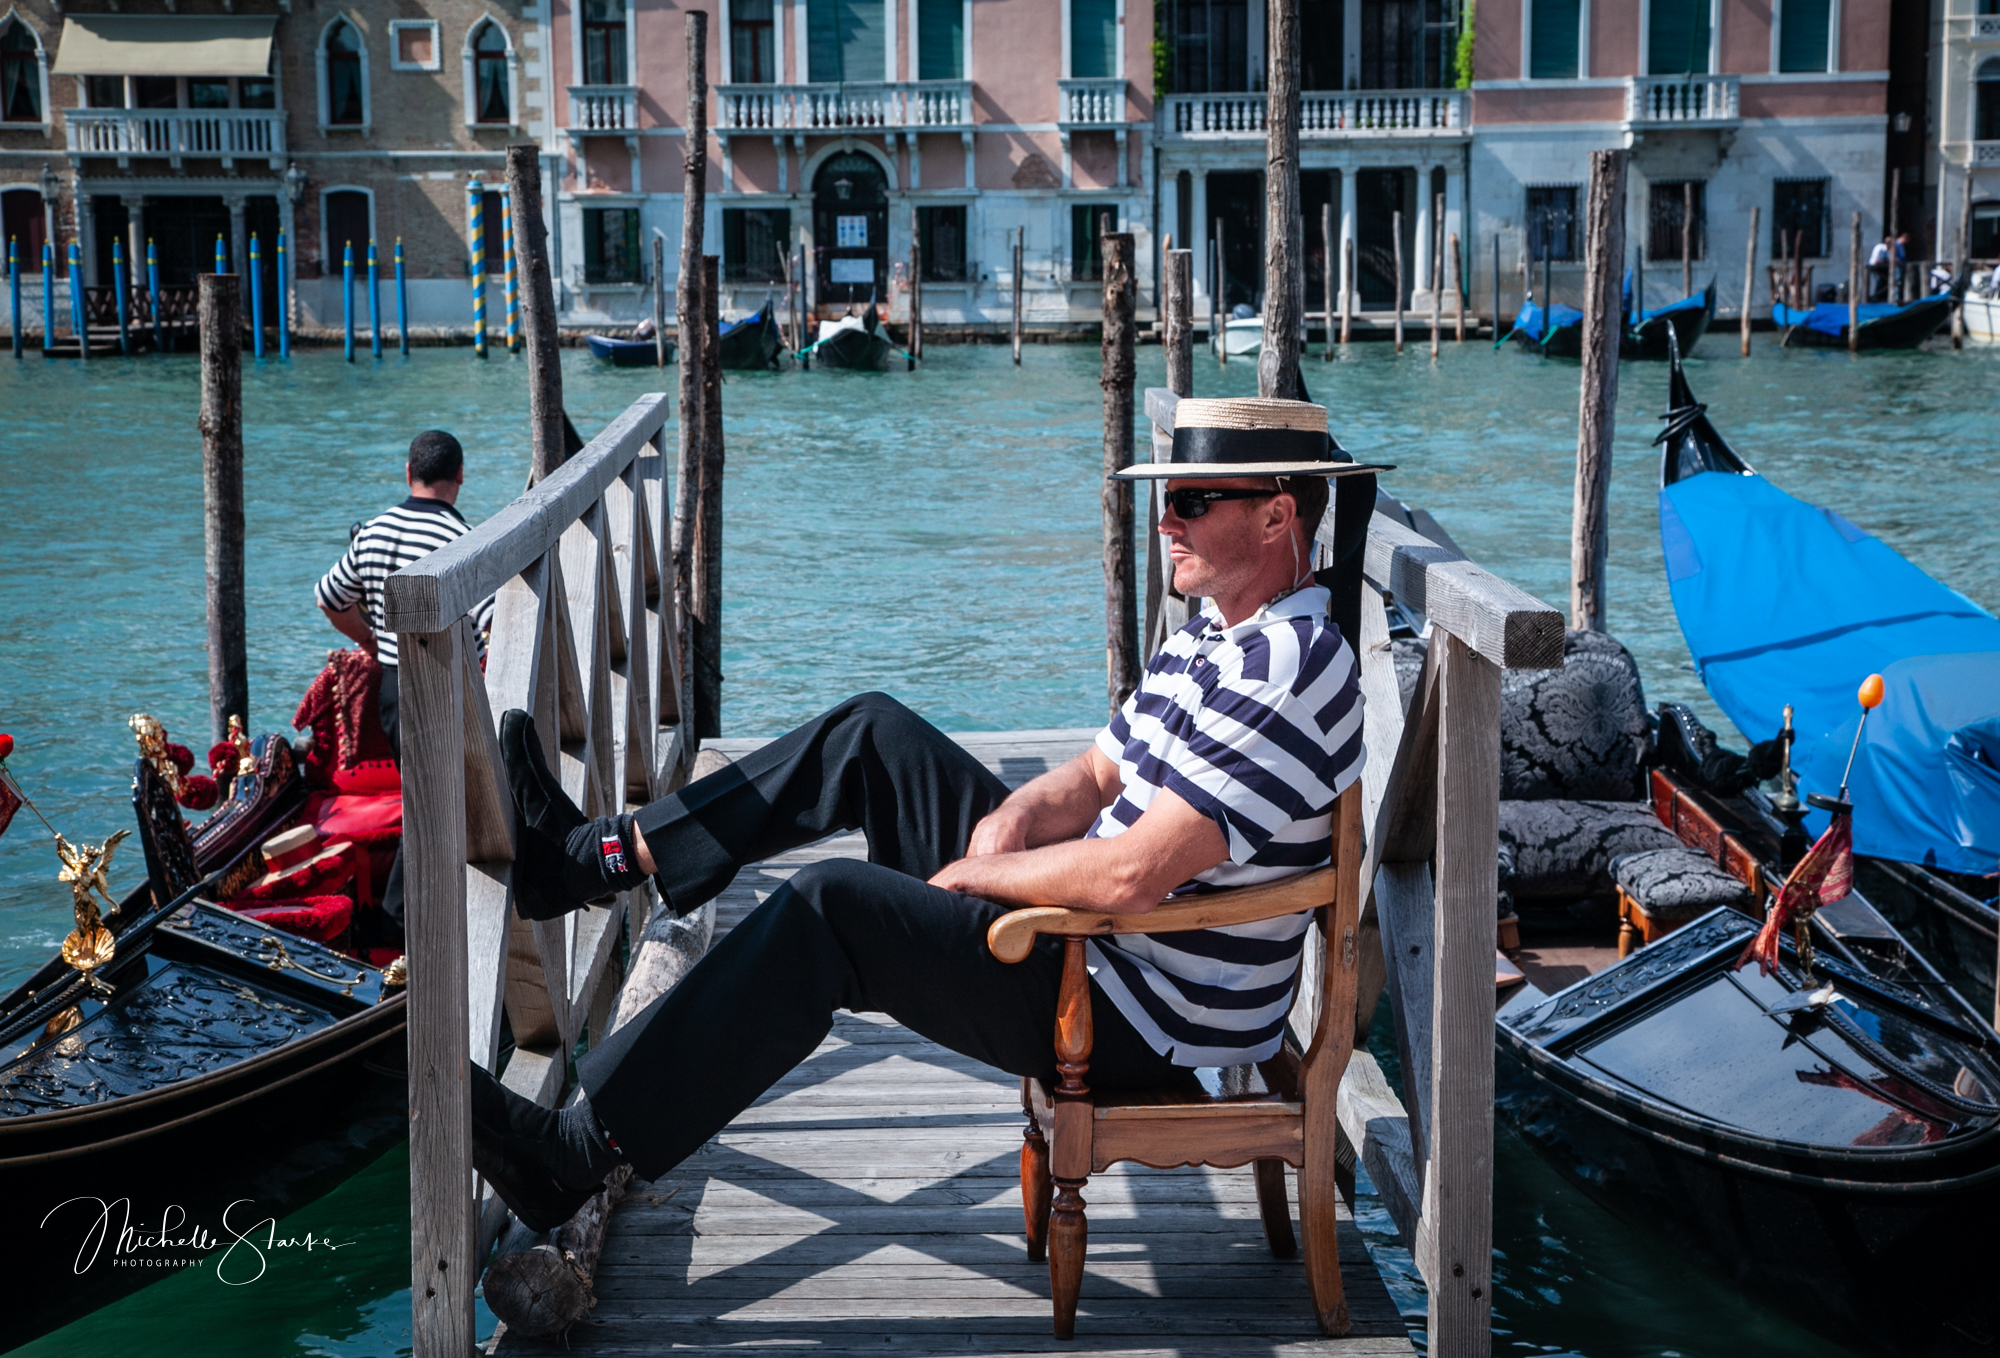 Gondolier at rest, Venice, Italy